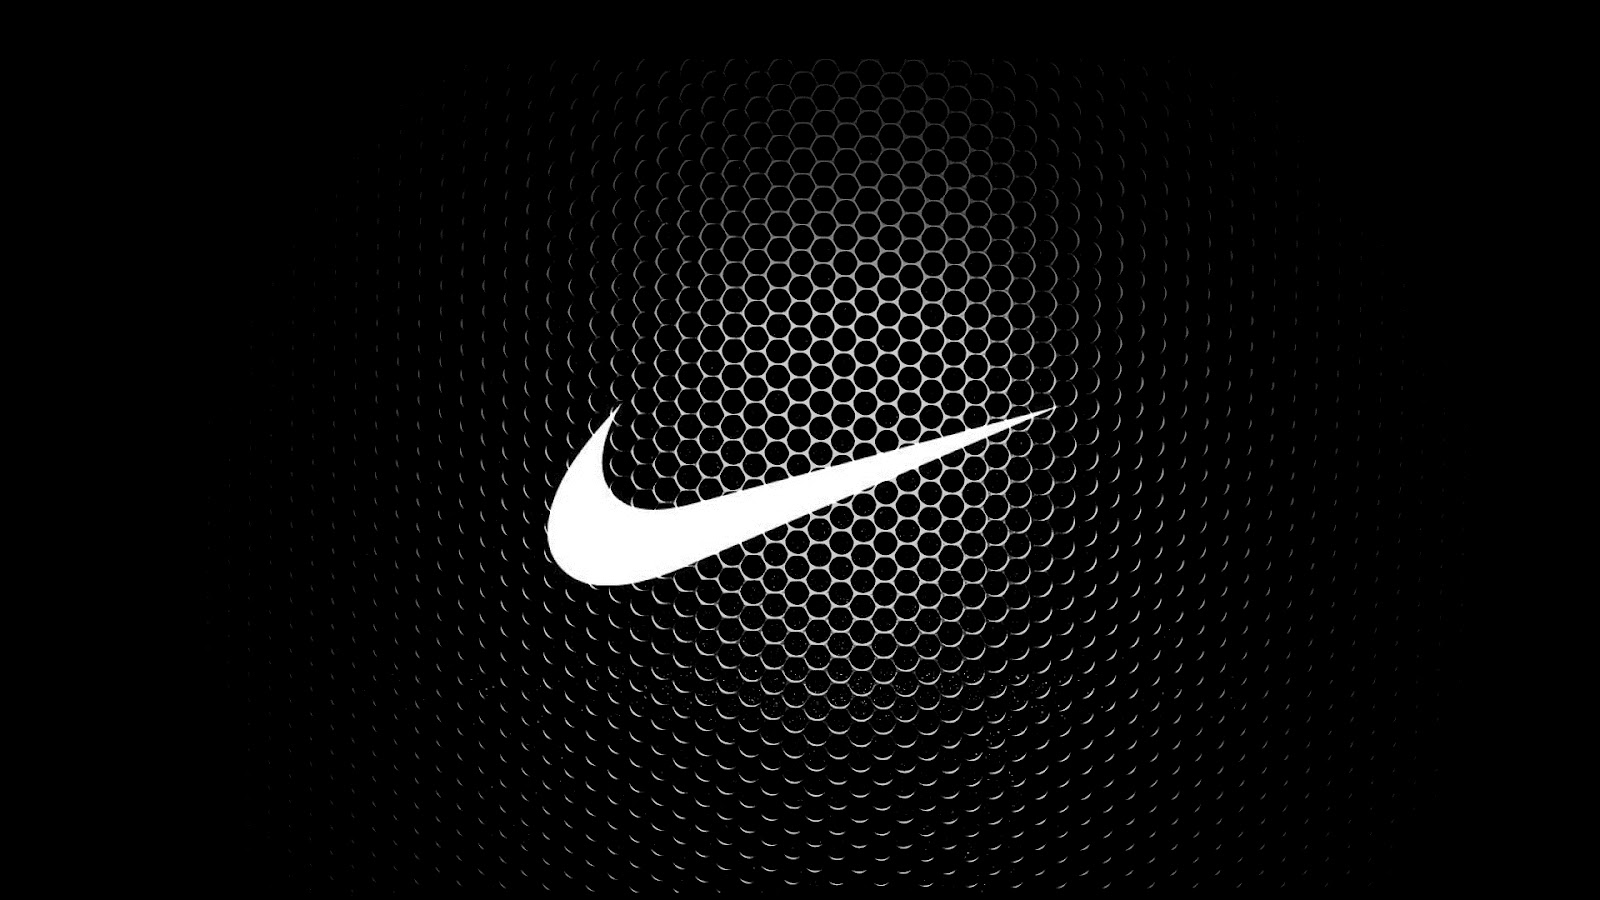 nike hd wallpaper | 1600x900 | #54082